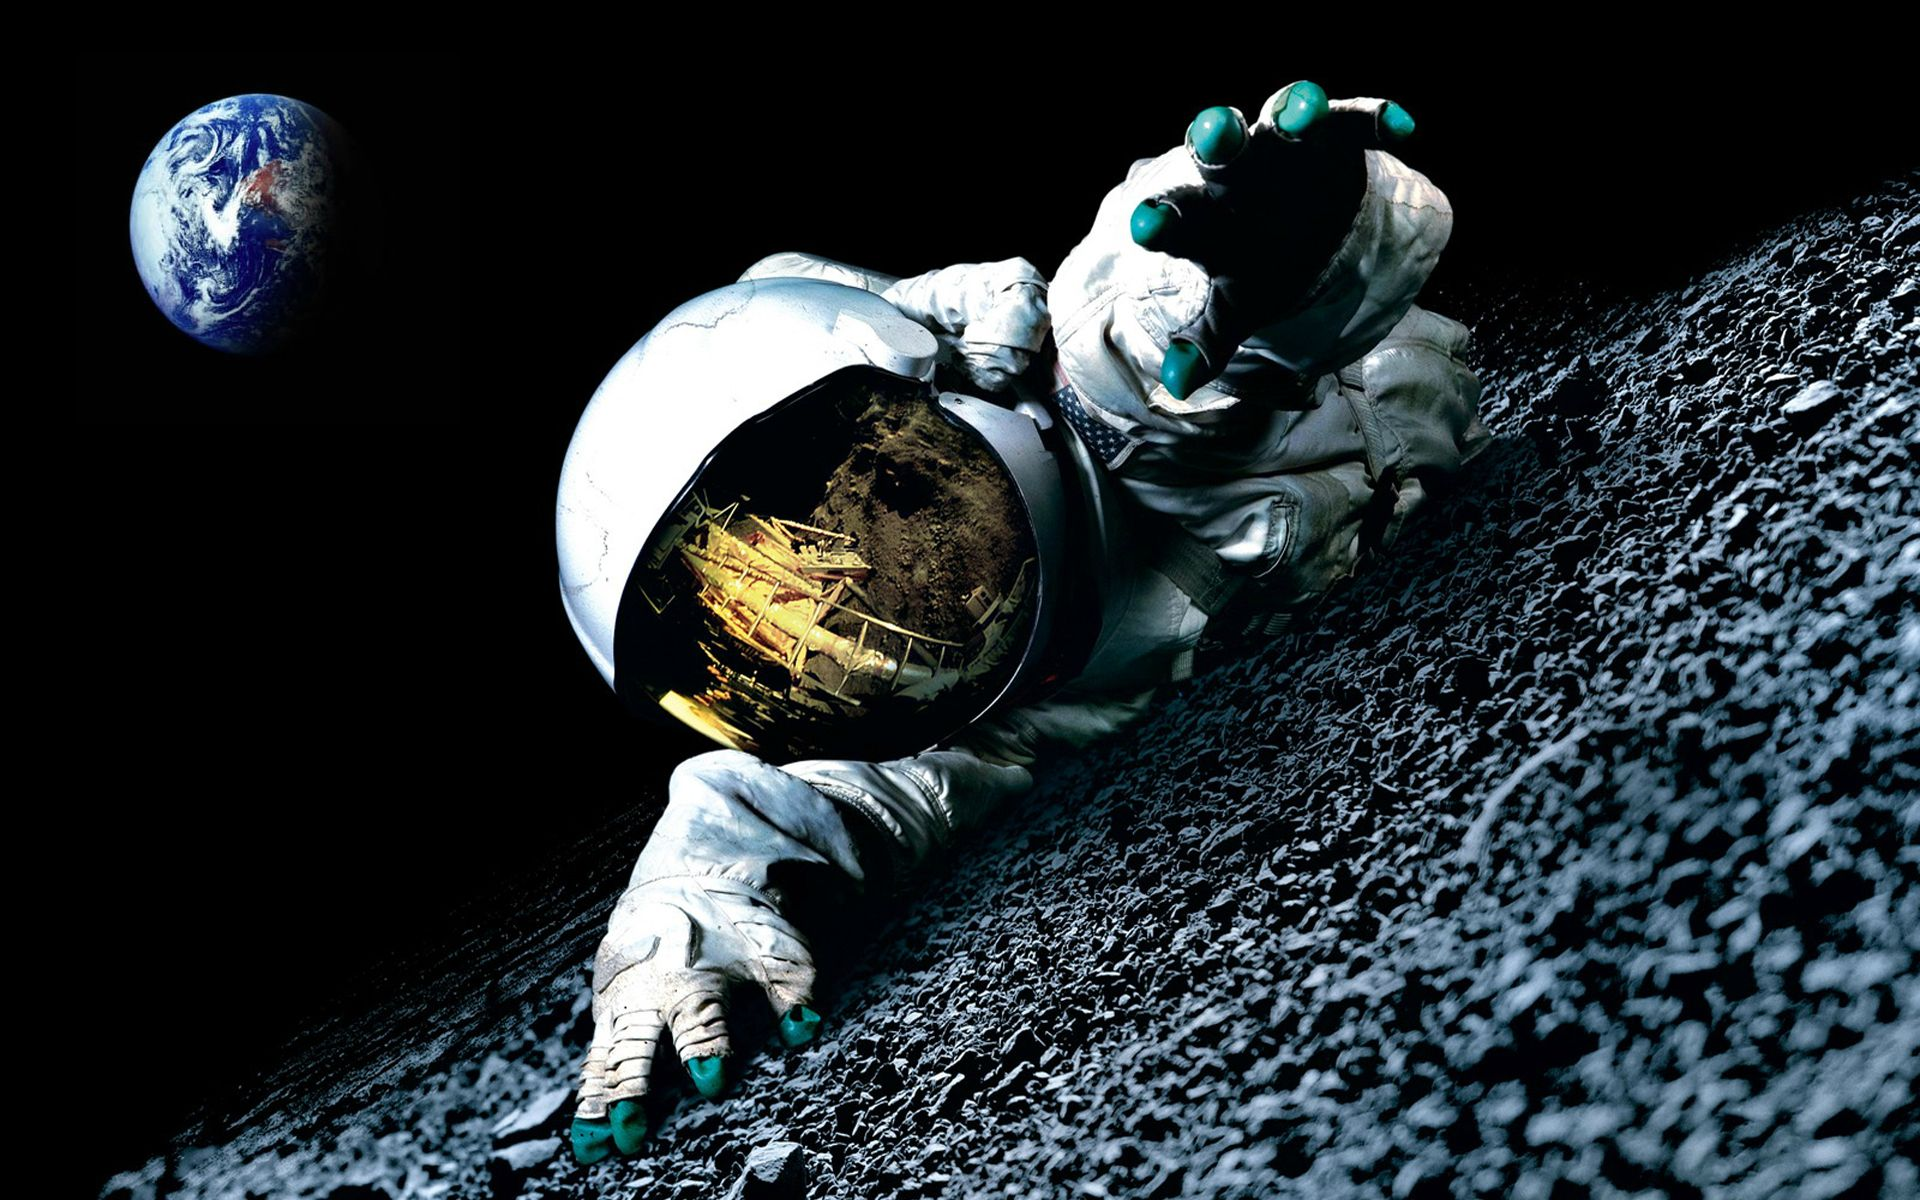 Free Download Man On The Moon Image To Desktop And Wallpaper